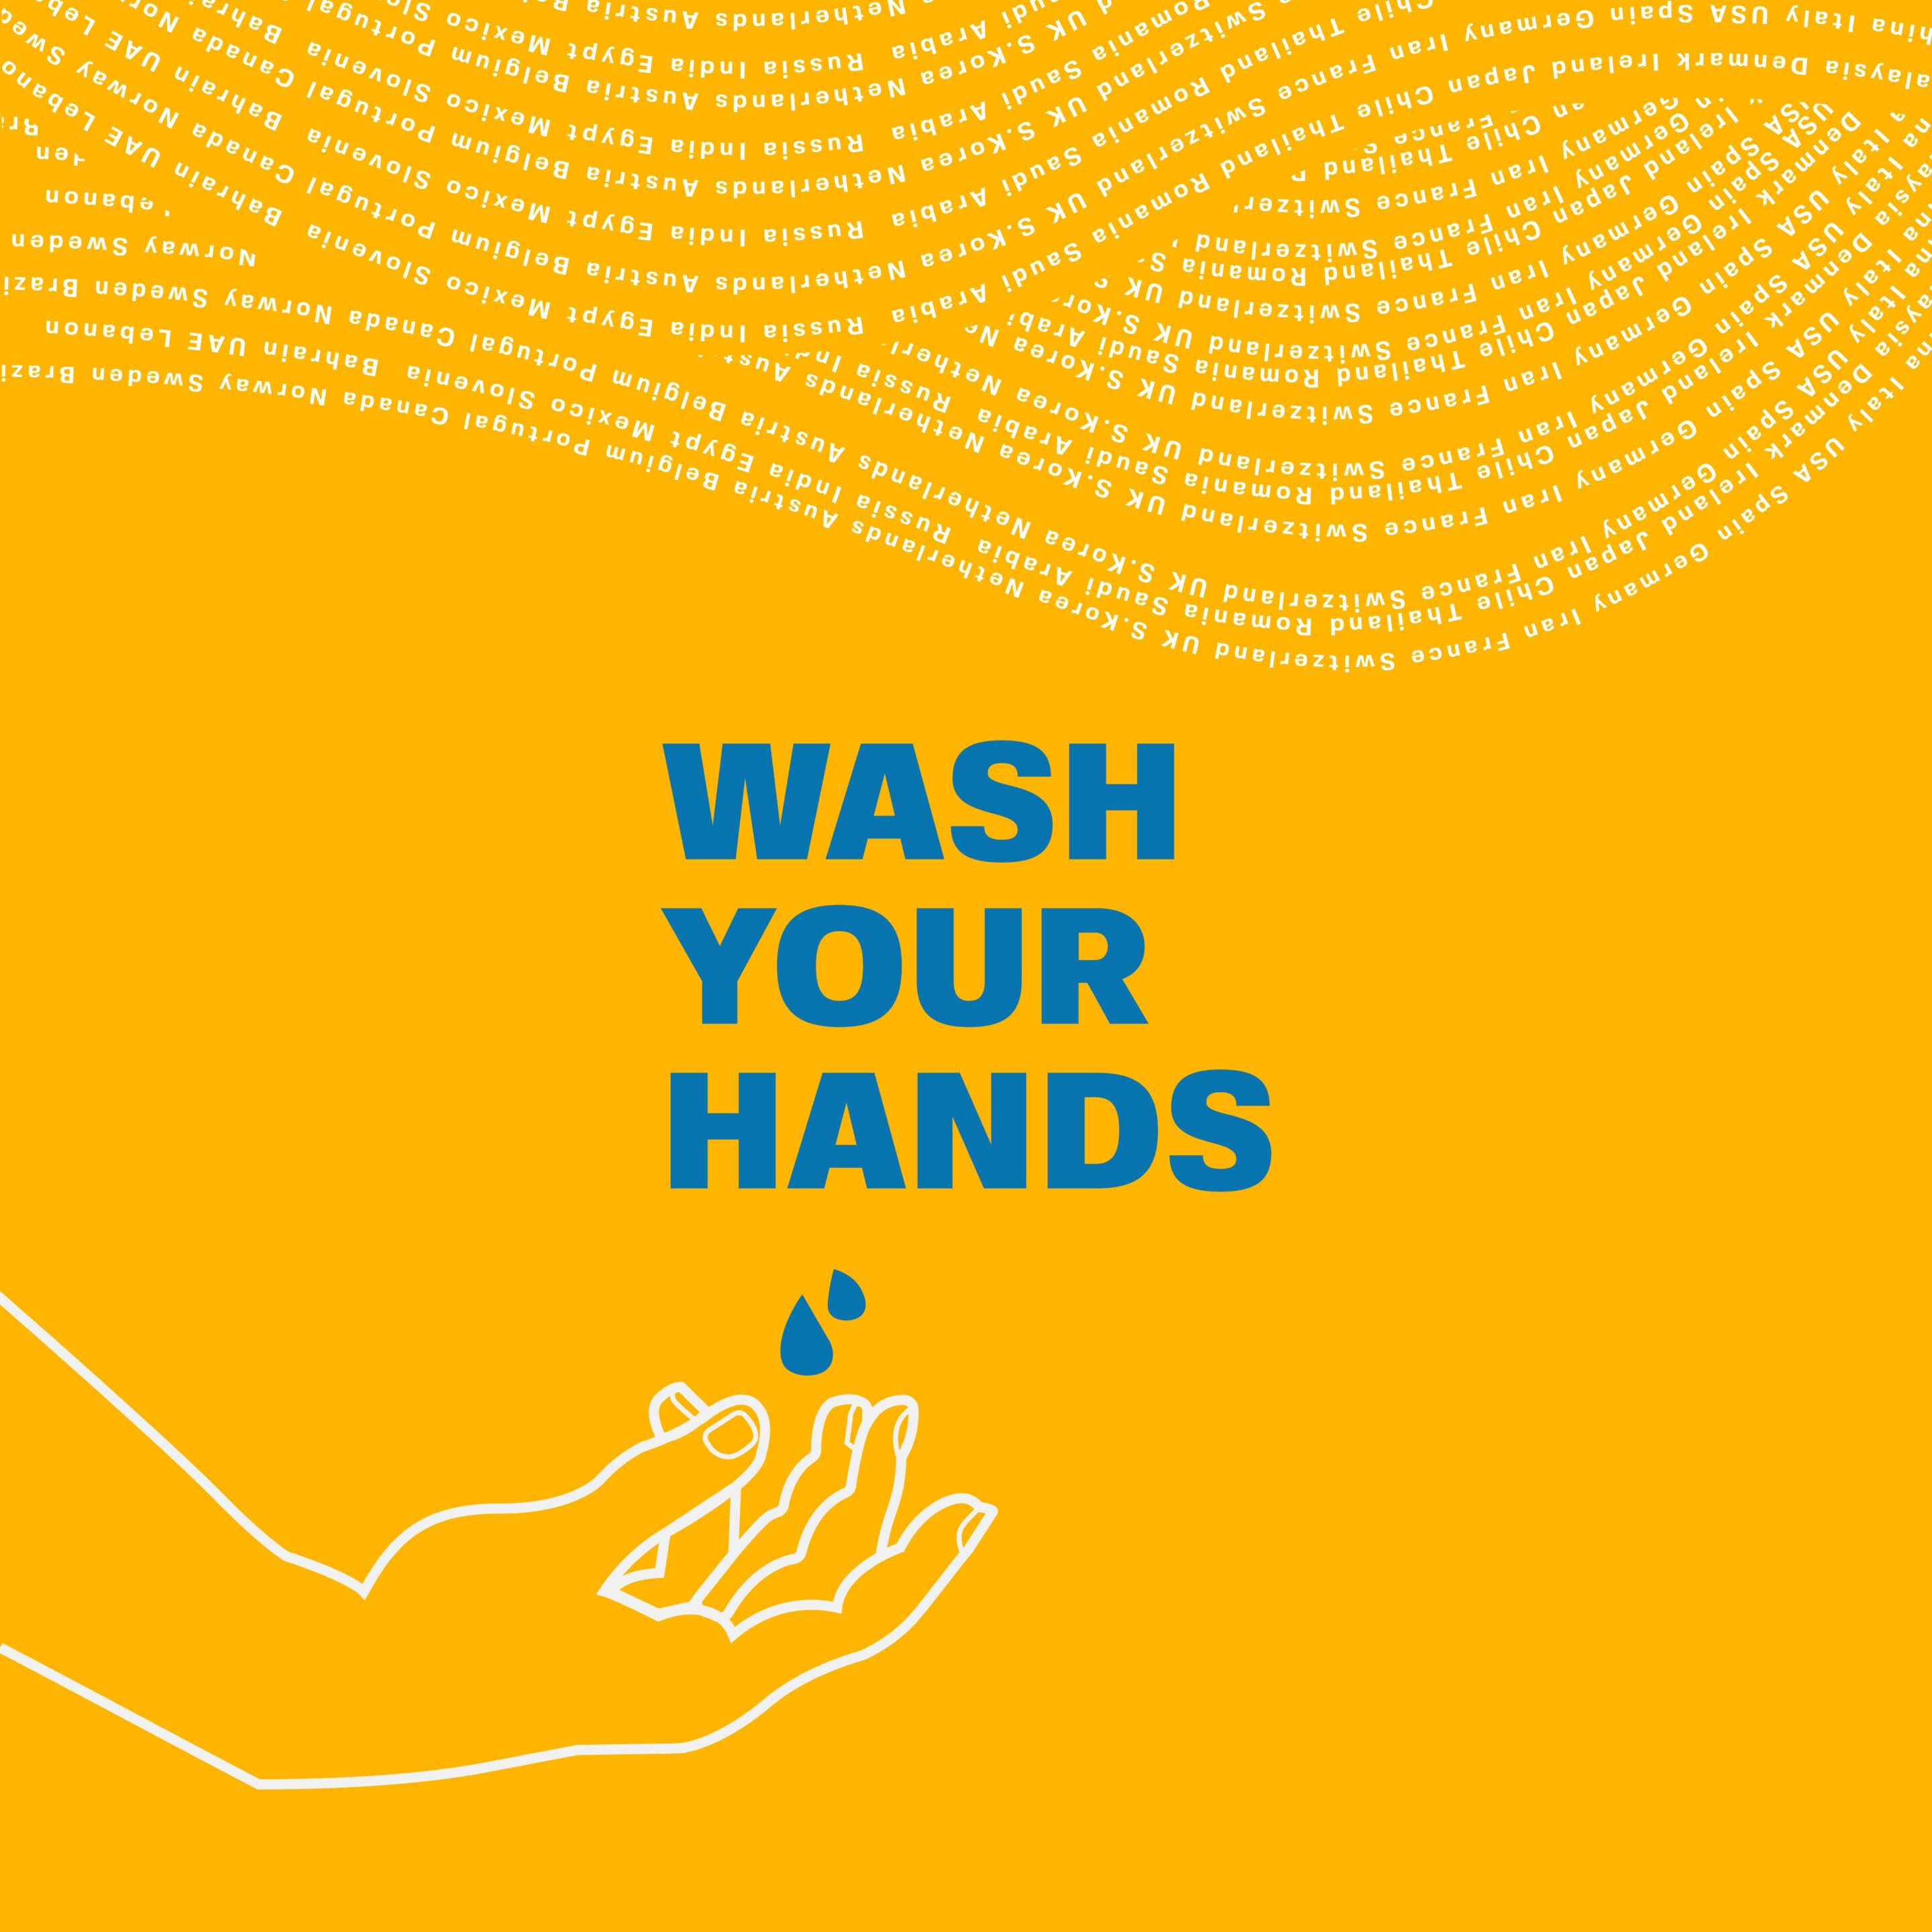 covid-19-wash-your-hands